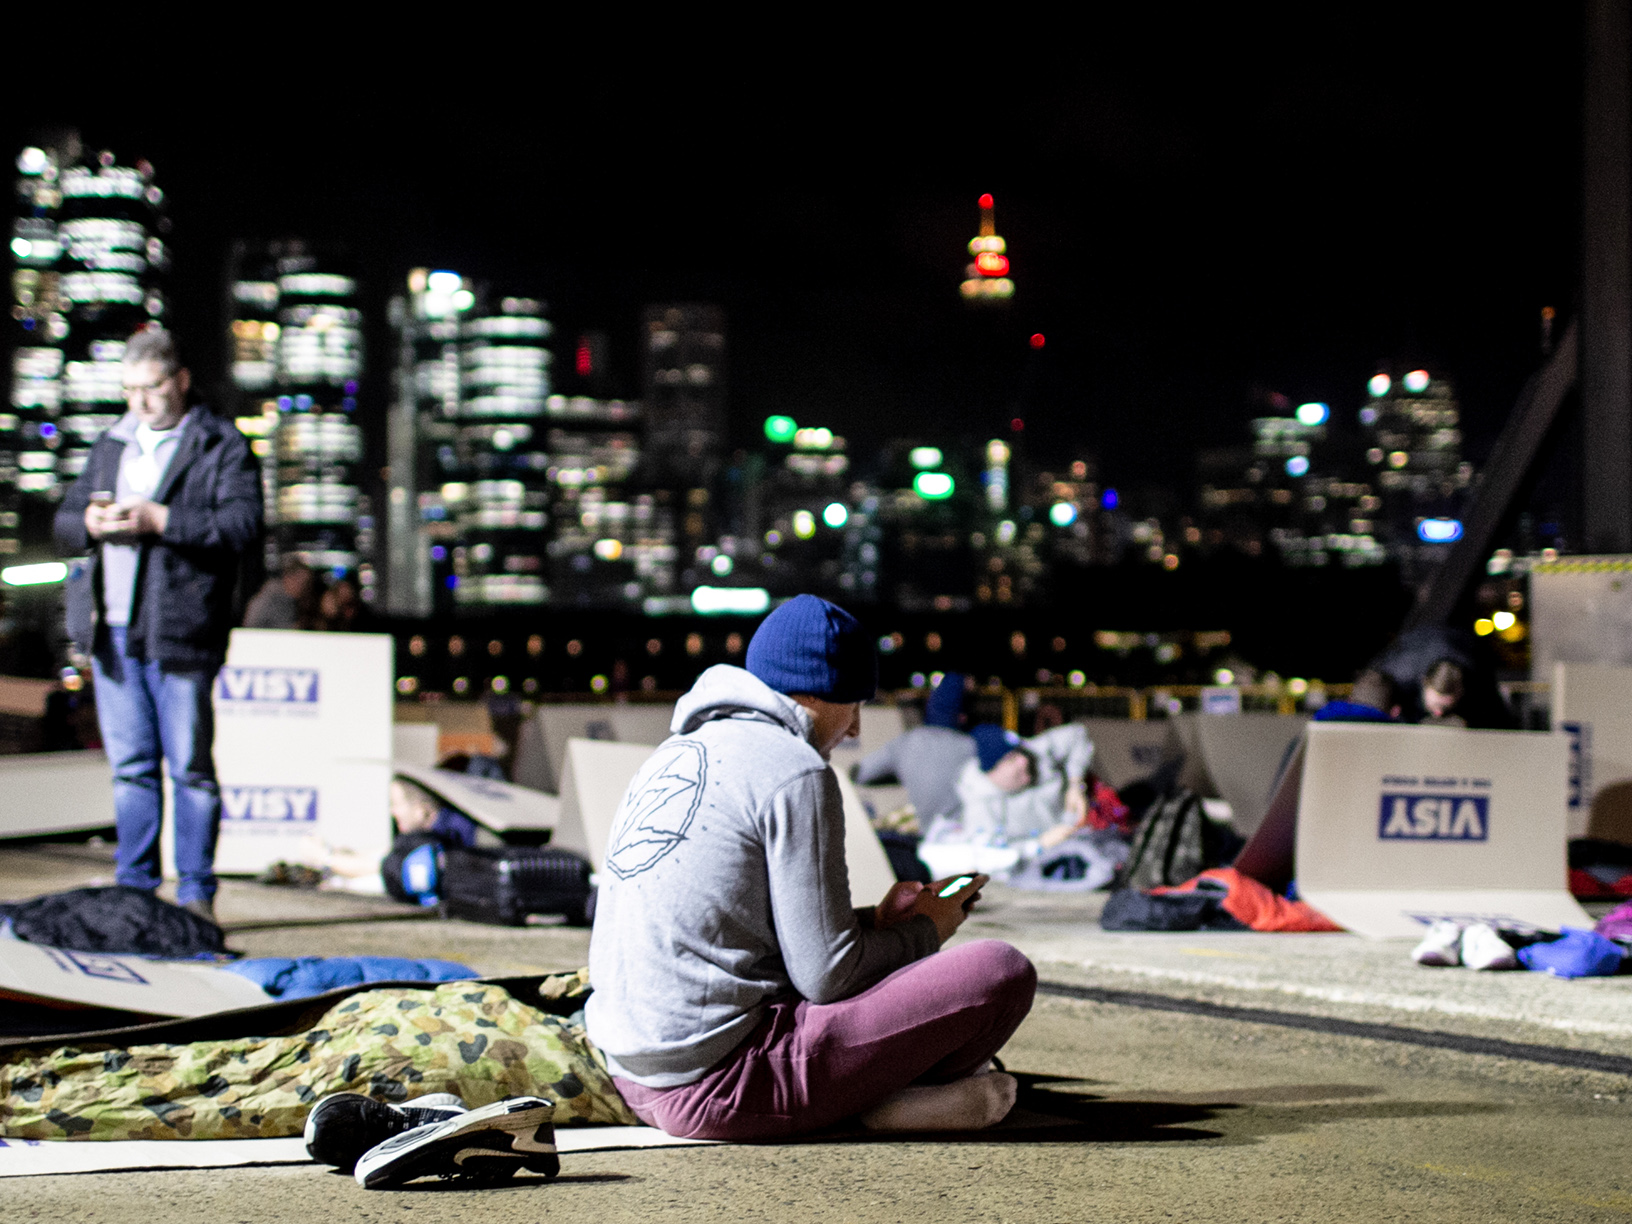 CEOs set up to sleep outside for the night against the Sydney skyline